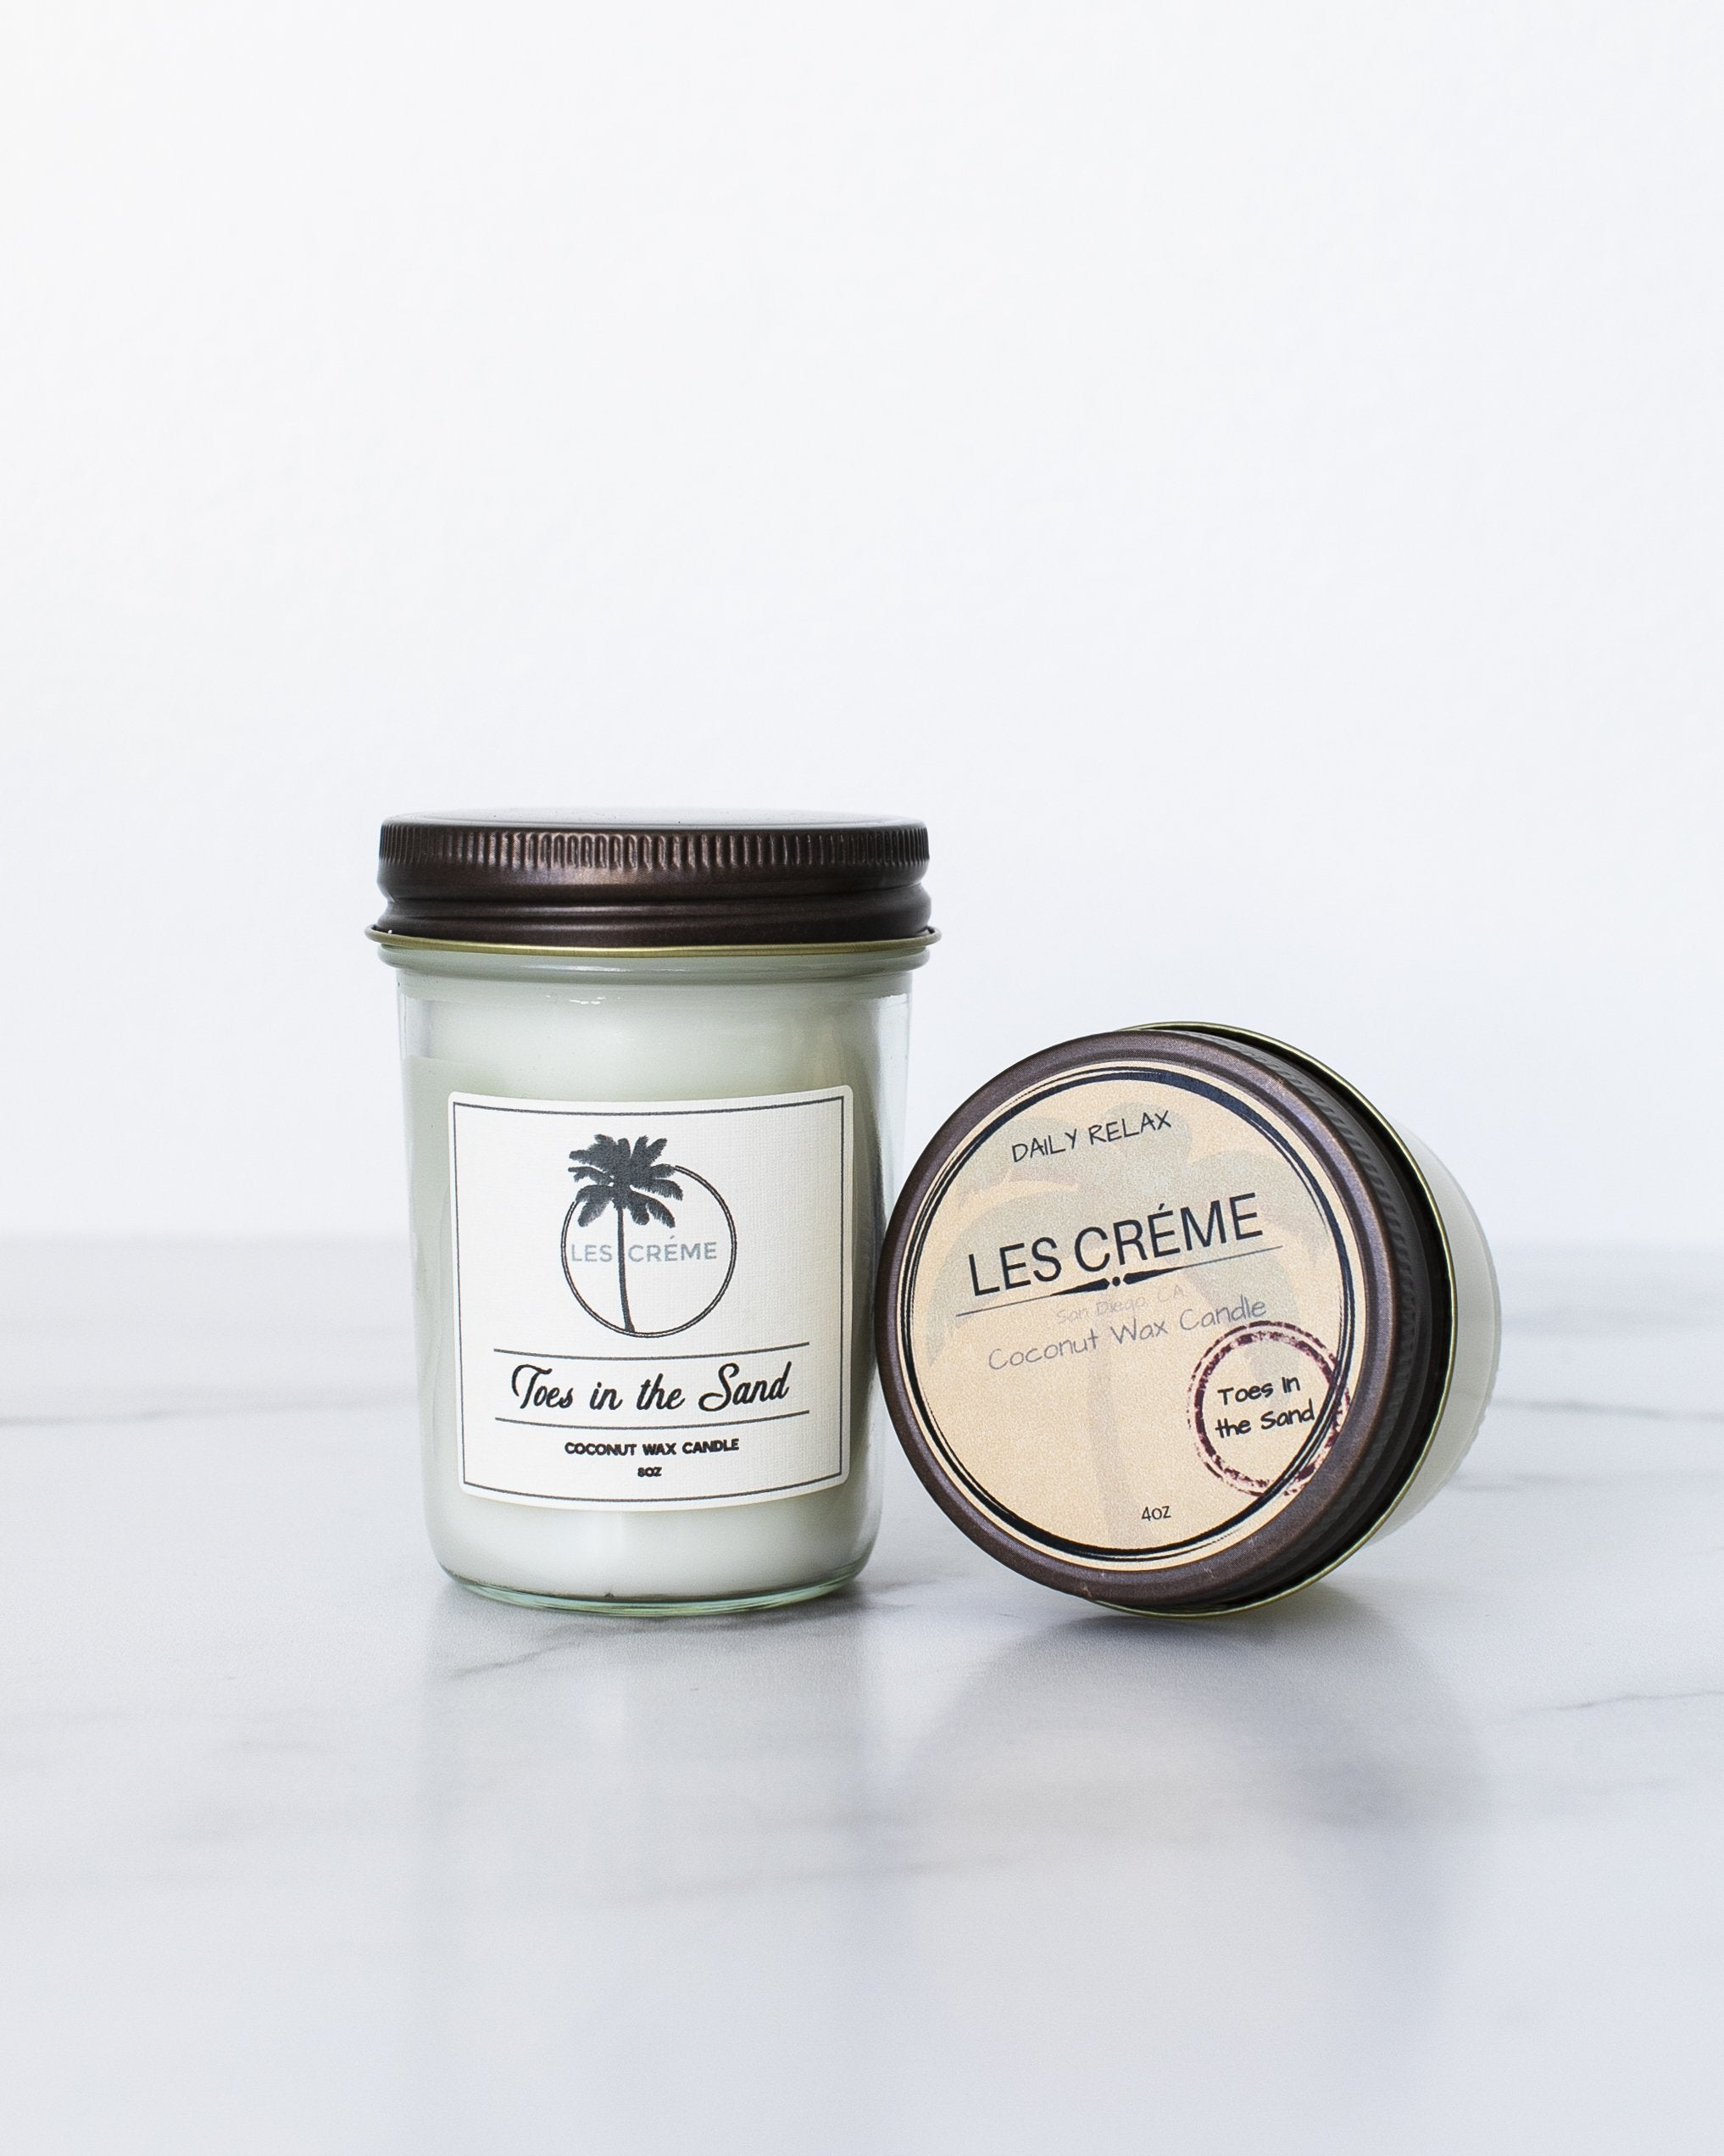 Toes in the Sand Scent Coconut Wax Candle - Zip & Mos